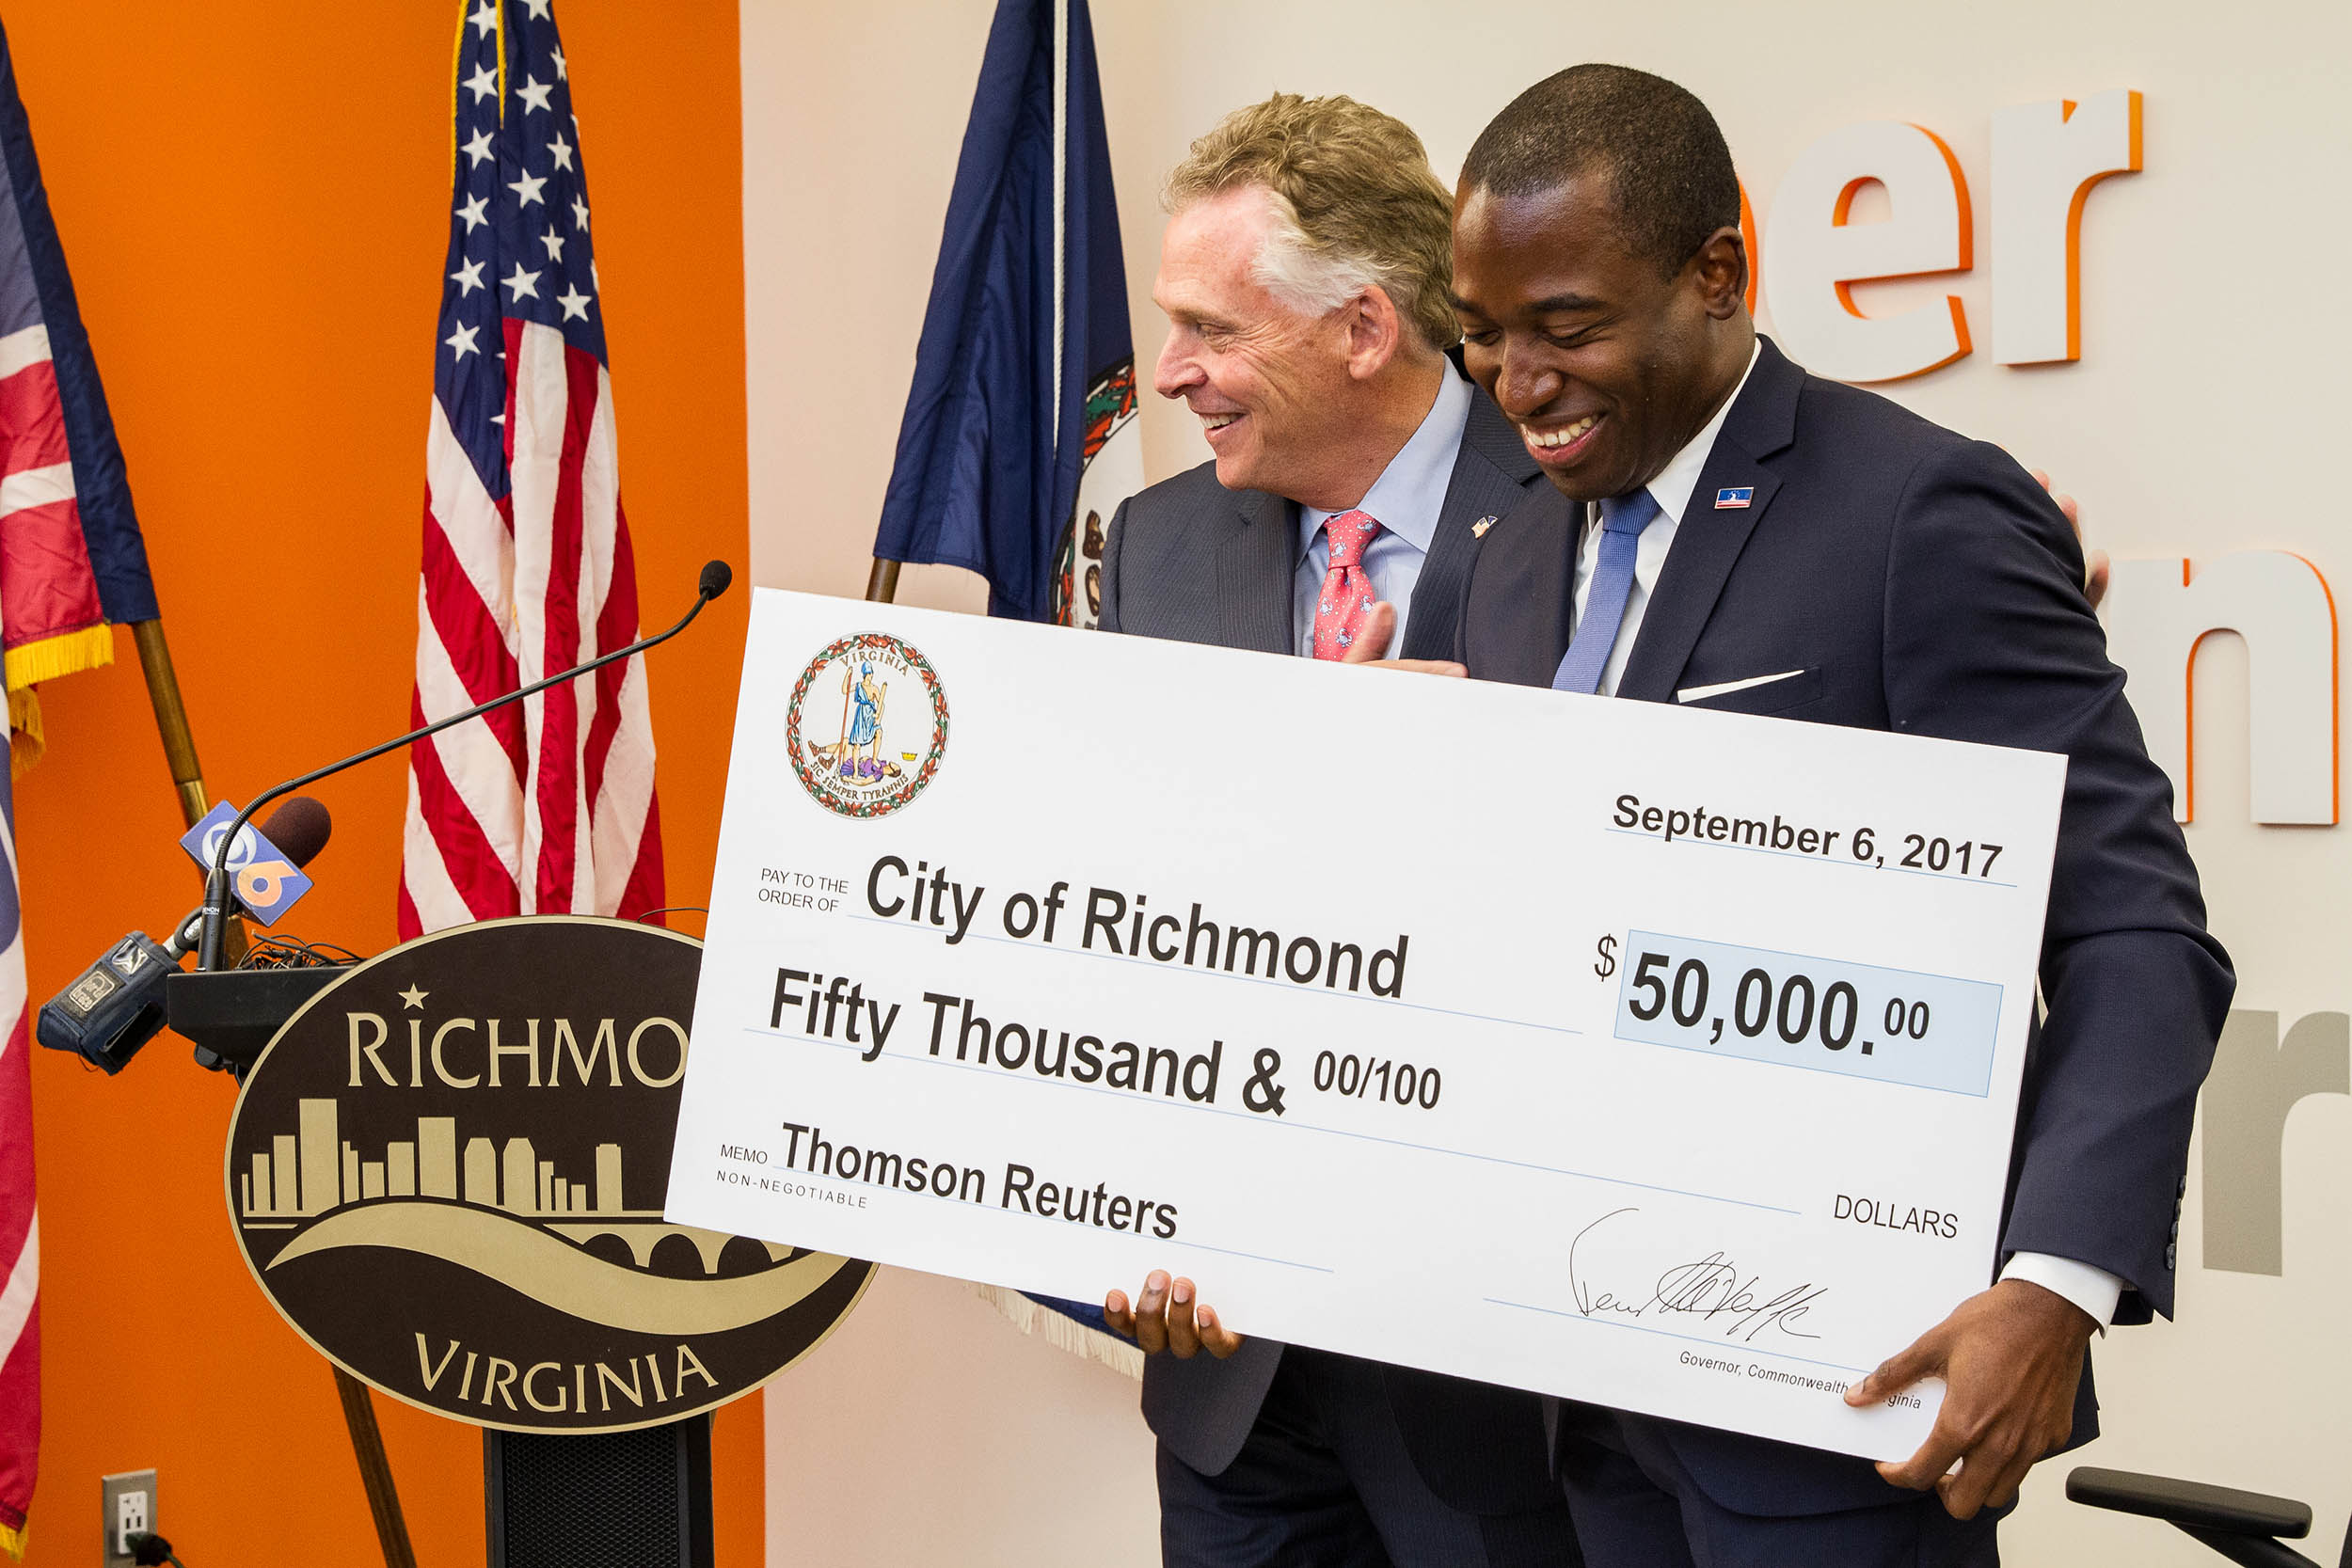 Terry-McAuliffe-and-Levar-Stoney-Thomson-Reuters-RVA-By-Hunter-Henkel-Photography.jpg